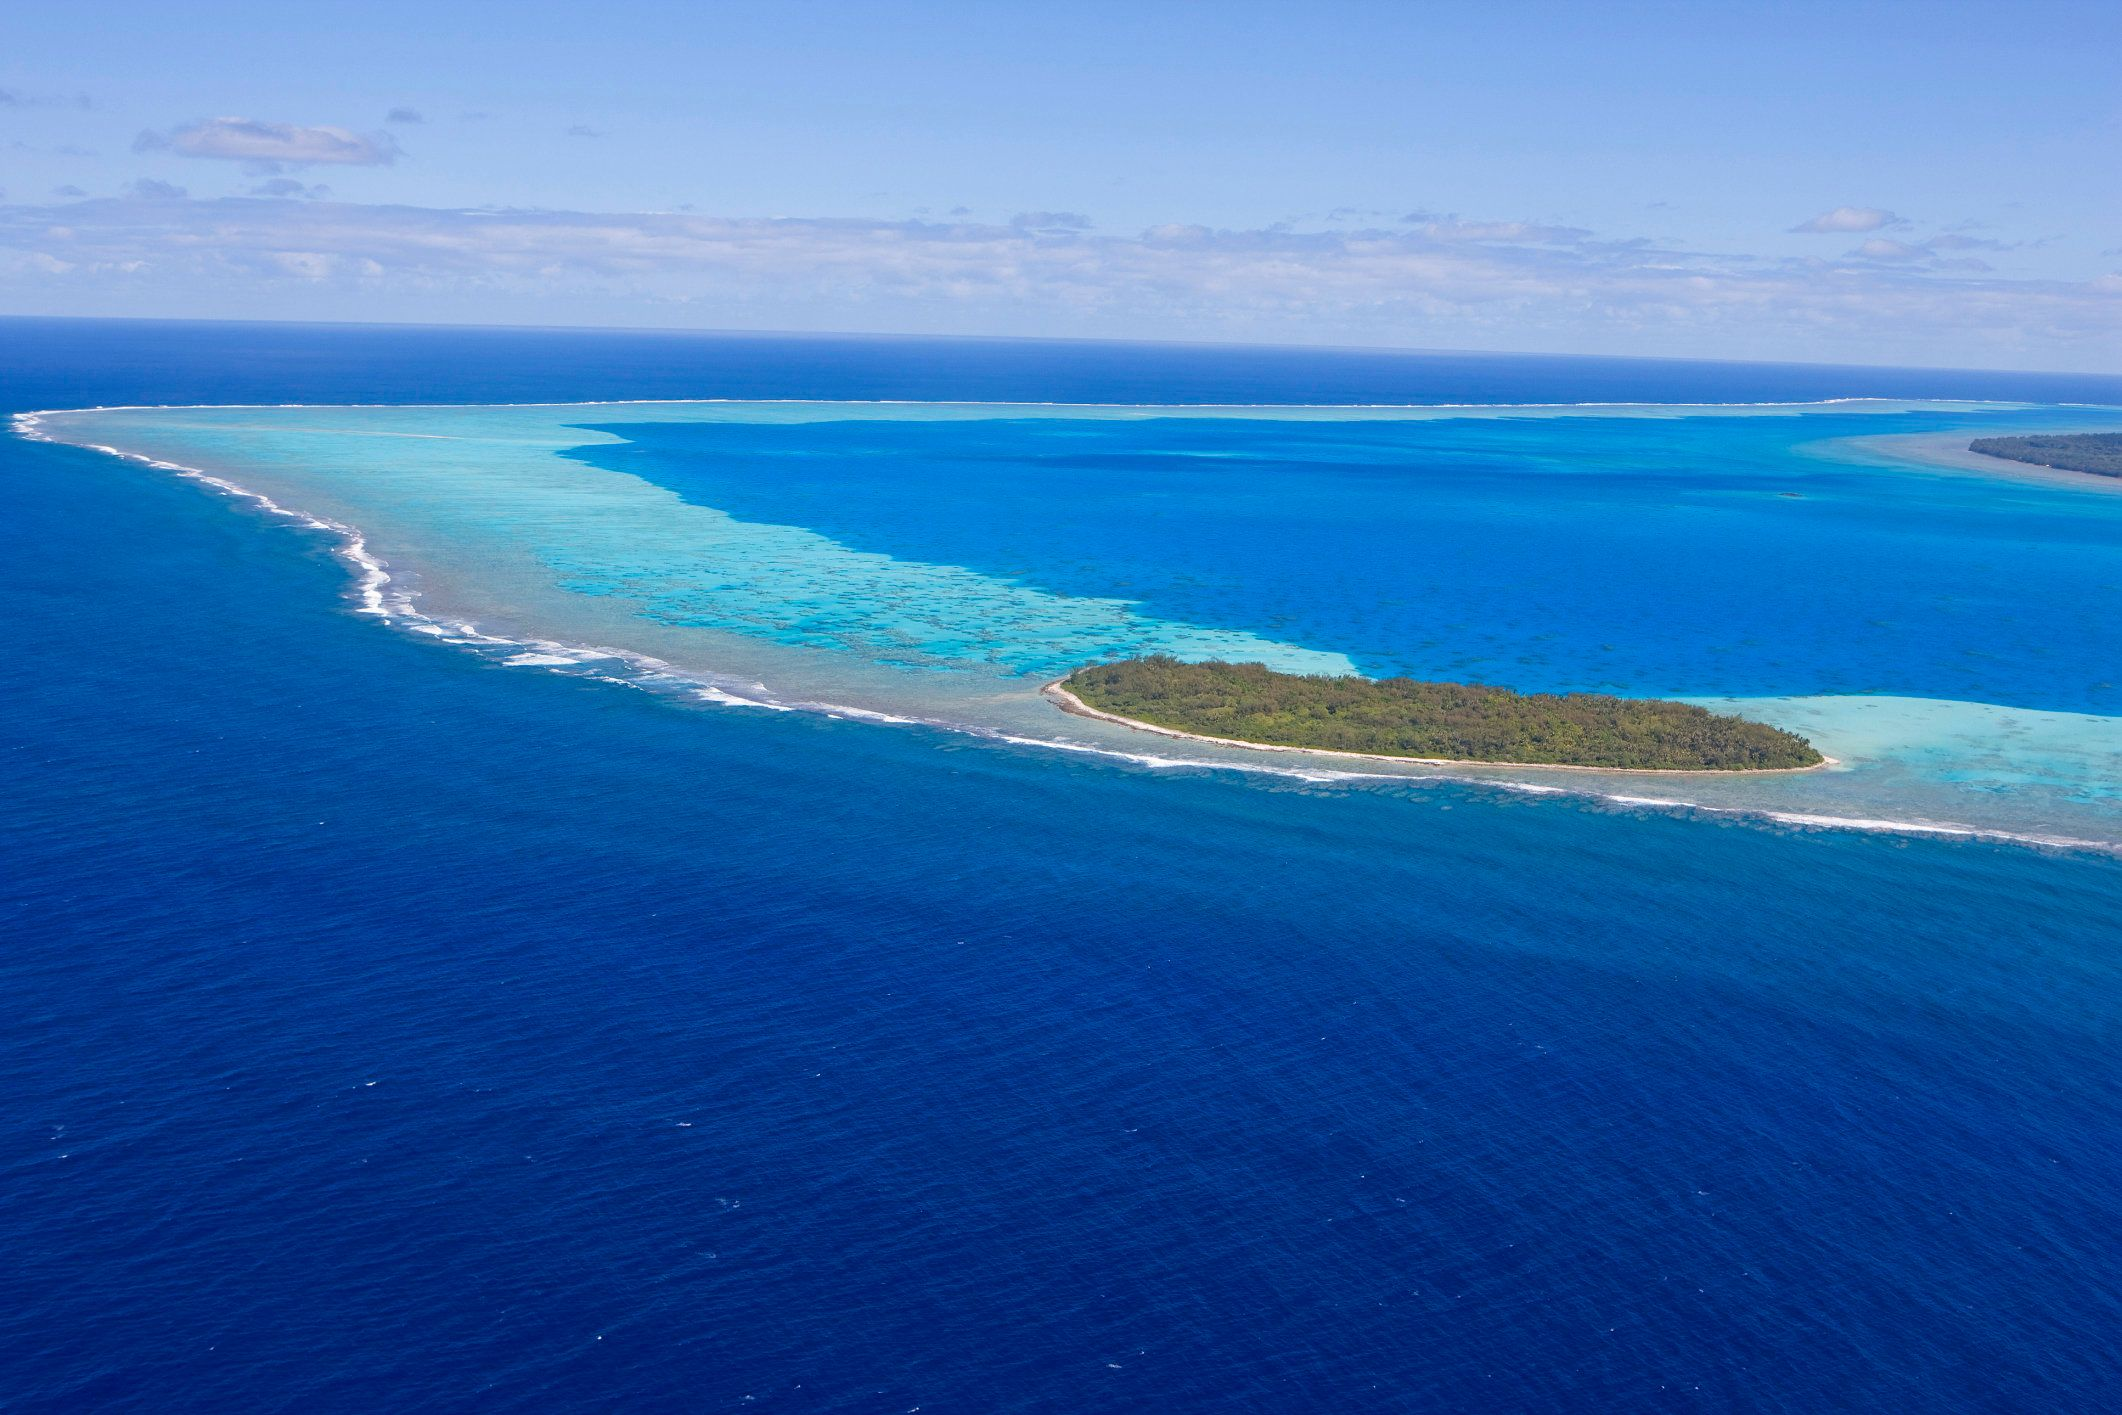 An aerial view of Raivavae island in the Austral Islands of French Polynesia.